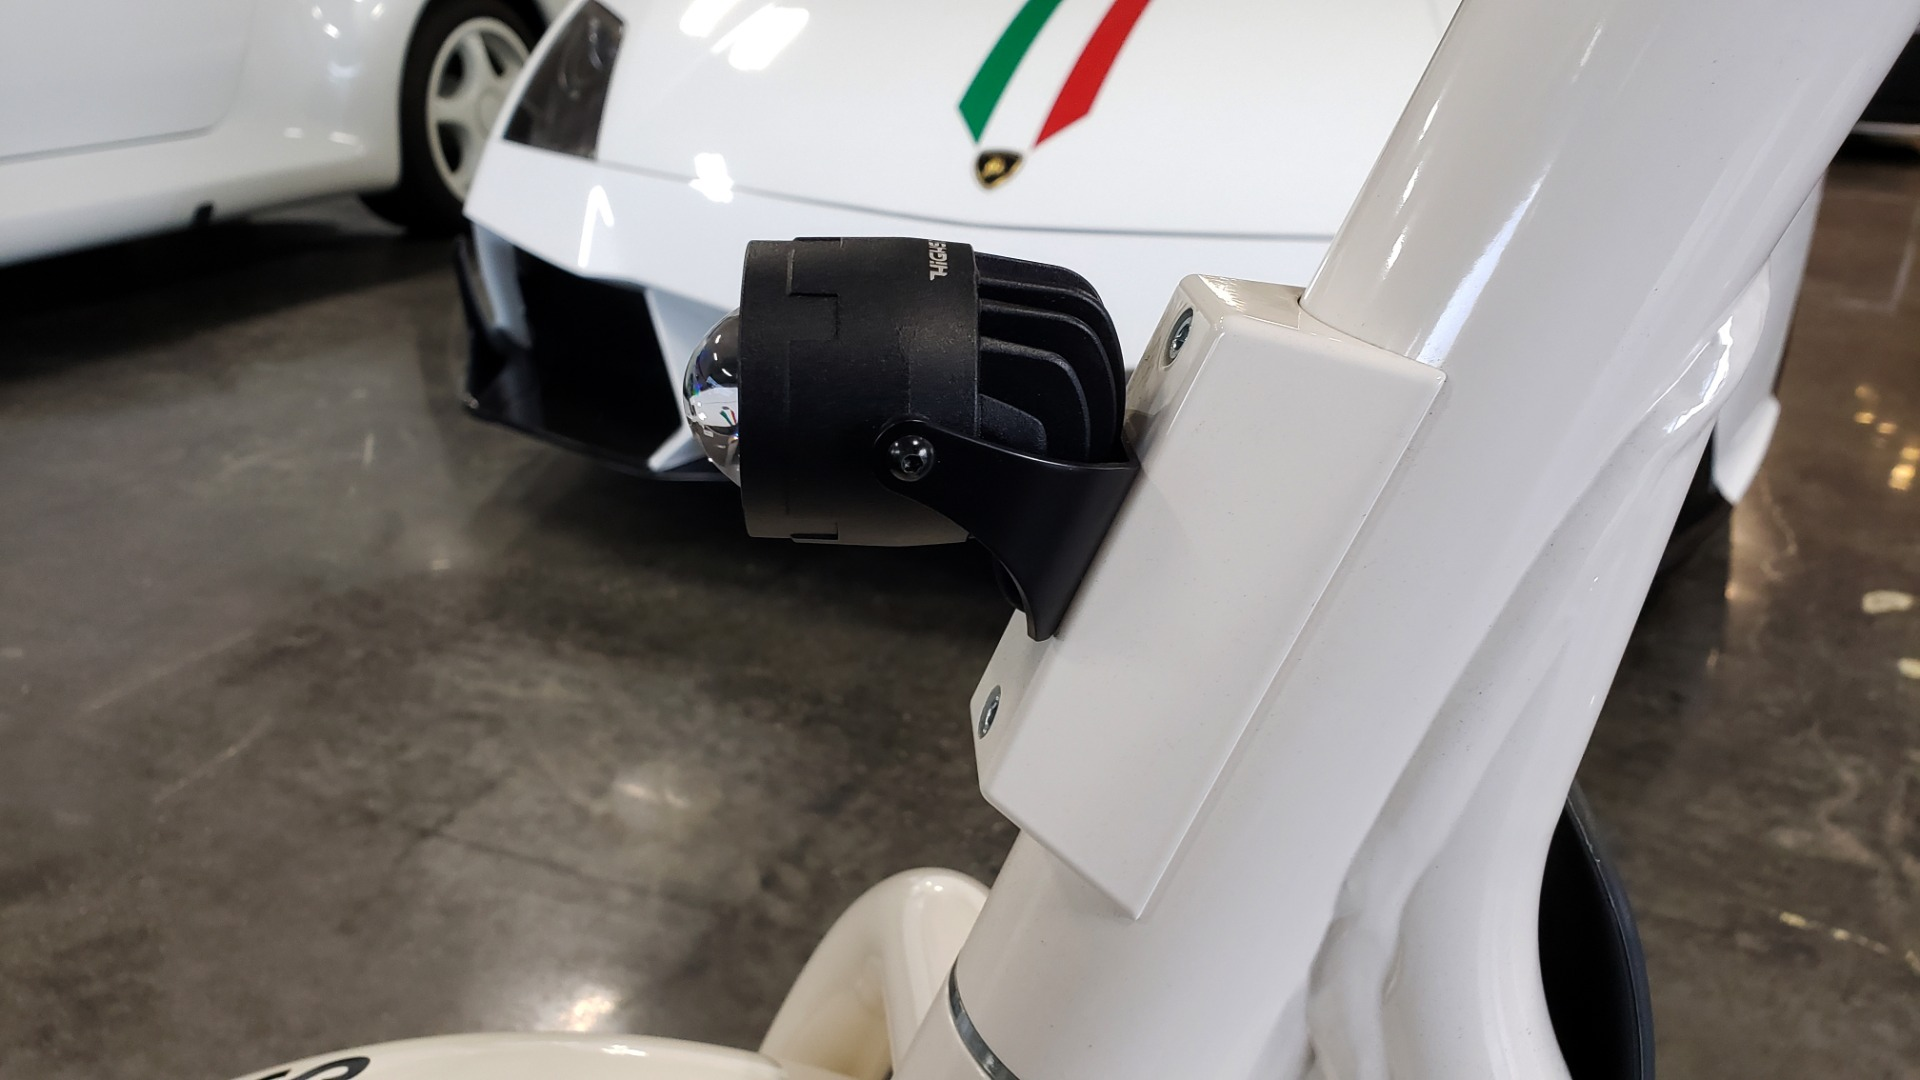 Used 2018 SCROOSER ELECTRIC SCOOTER SELF BALANCED / WHITE / 15.5 MPH / 34 MI RANGE for sale Sold at Formula Imports in Charlotte NC 28227 12